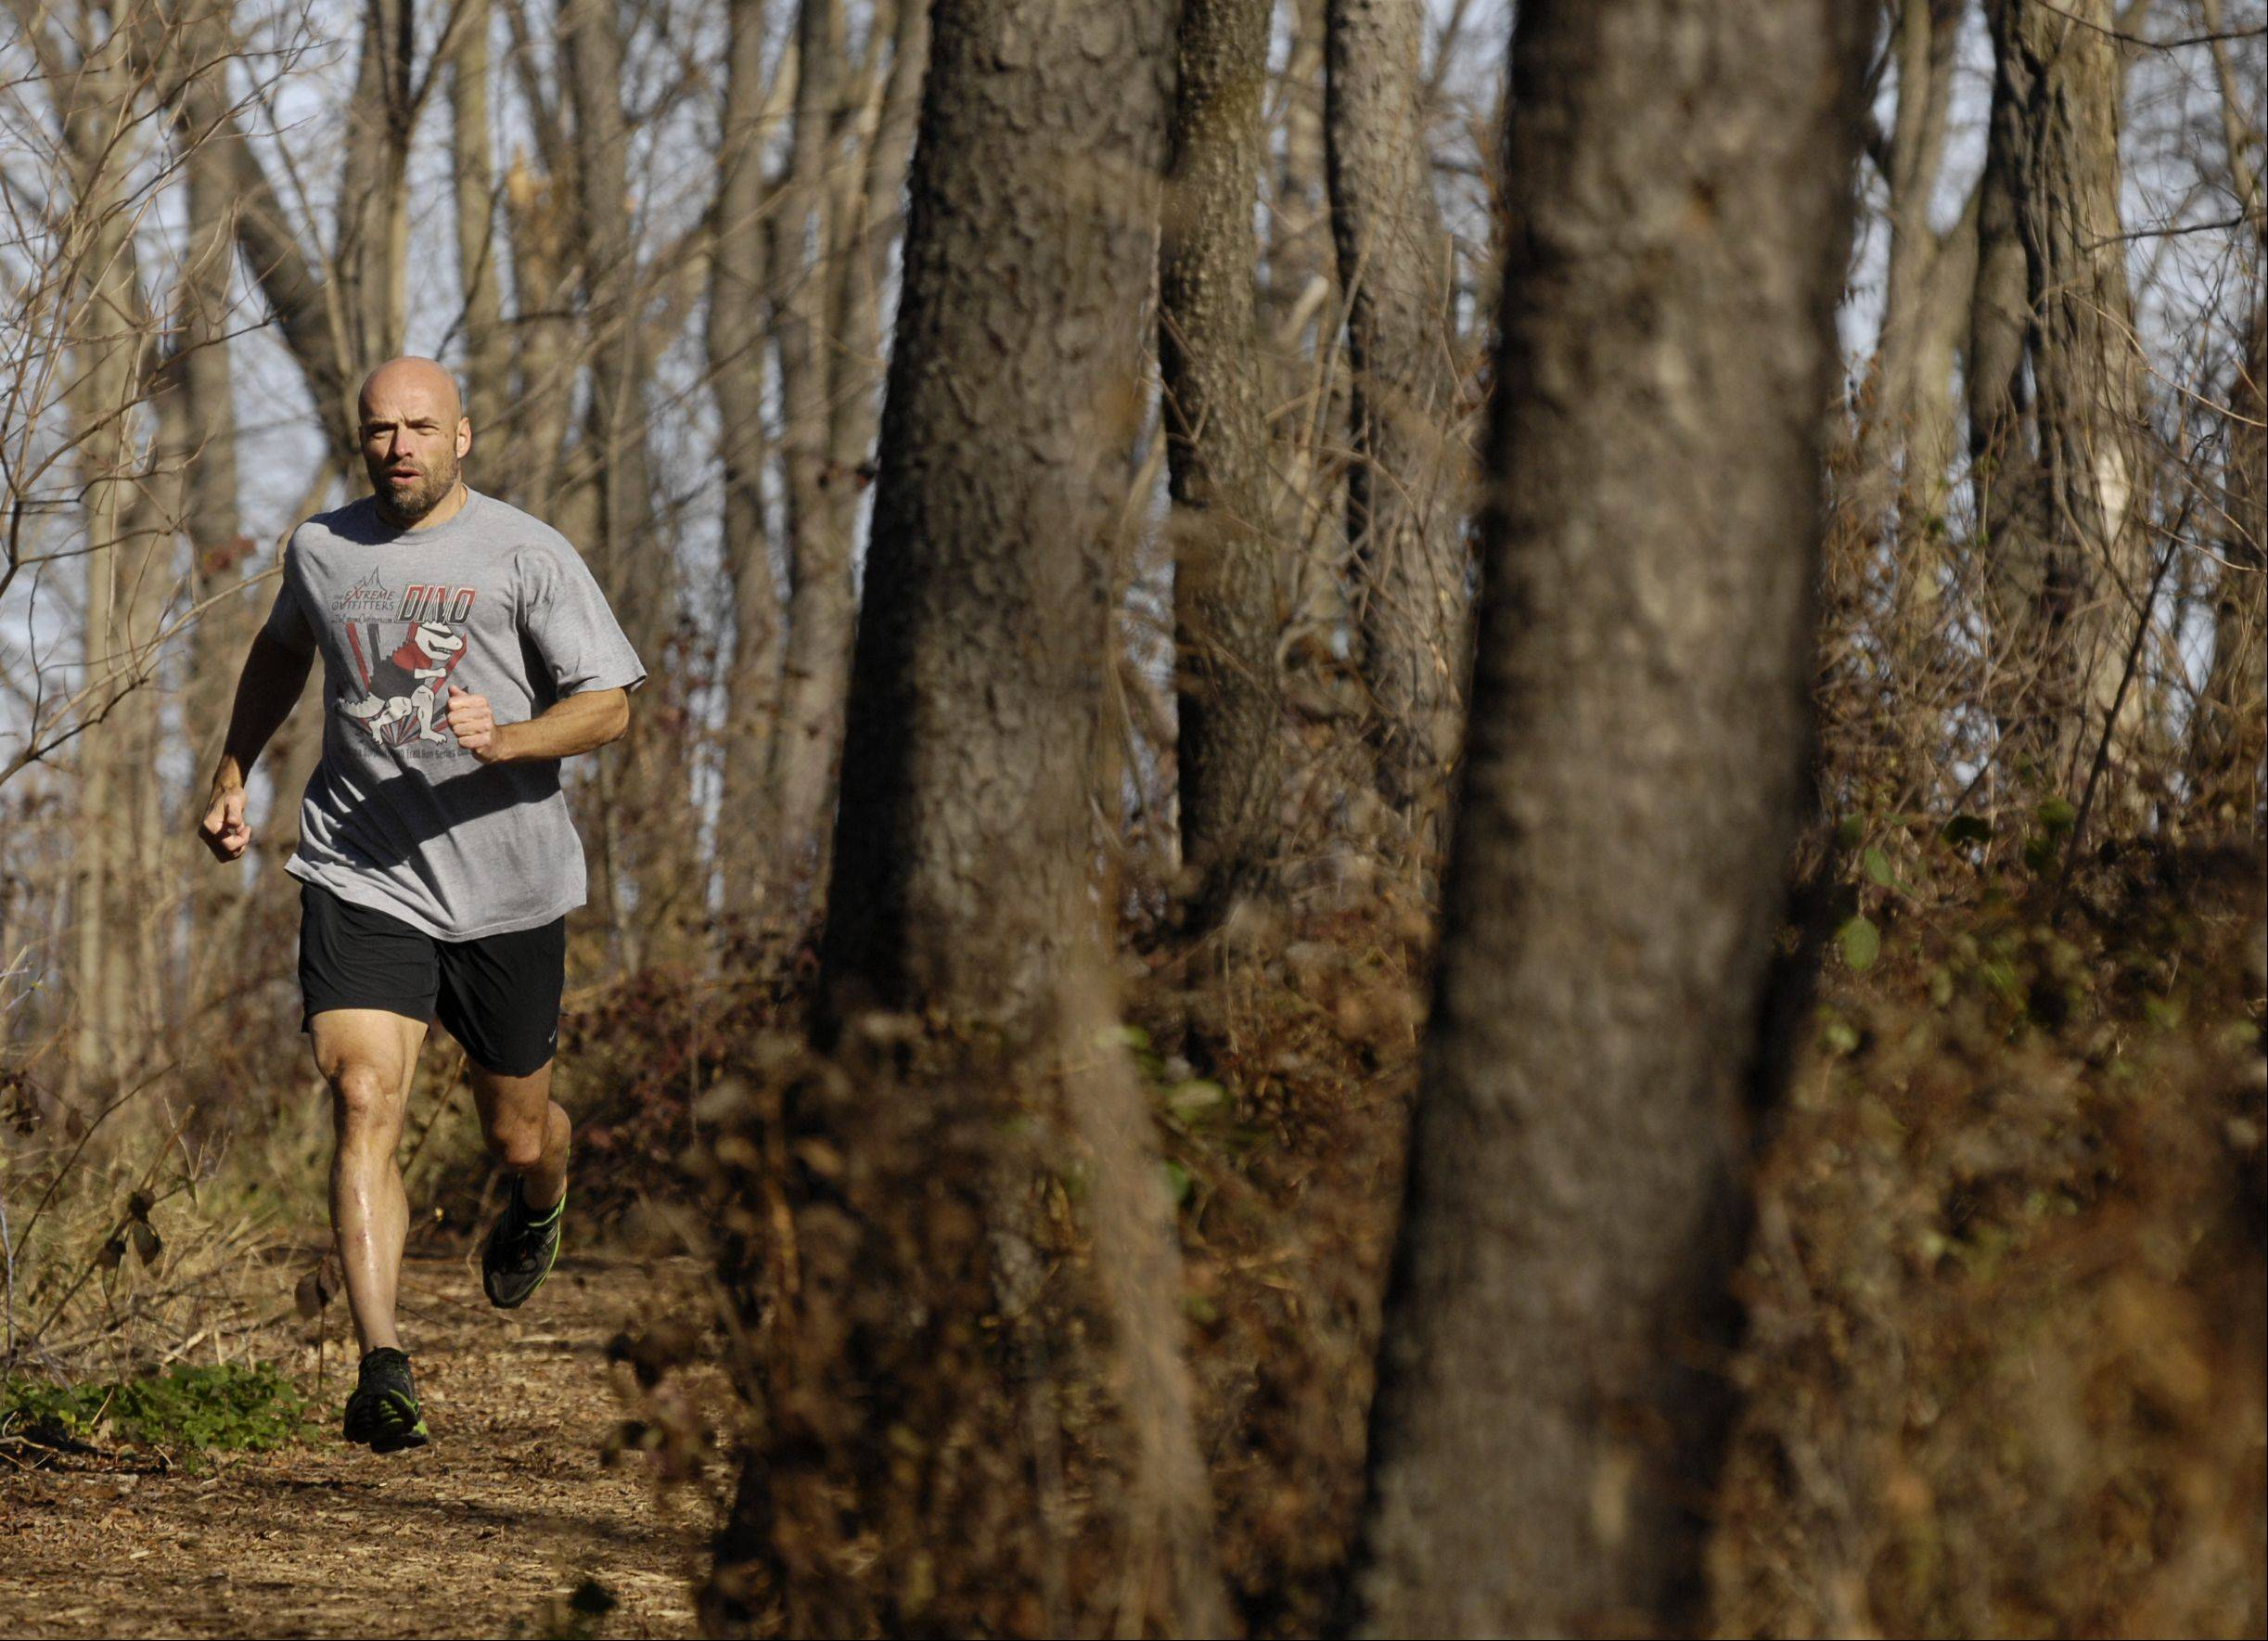 Mike DeMeritt of West Chicago, is a runner who competes each year in a 100-mile race in Wisconsin to raise money for DuPage PADS. DeMeritt sometimes trains at the Lincoln Marsh in Wheaton.